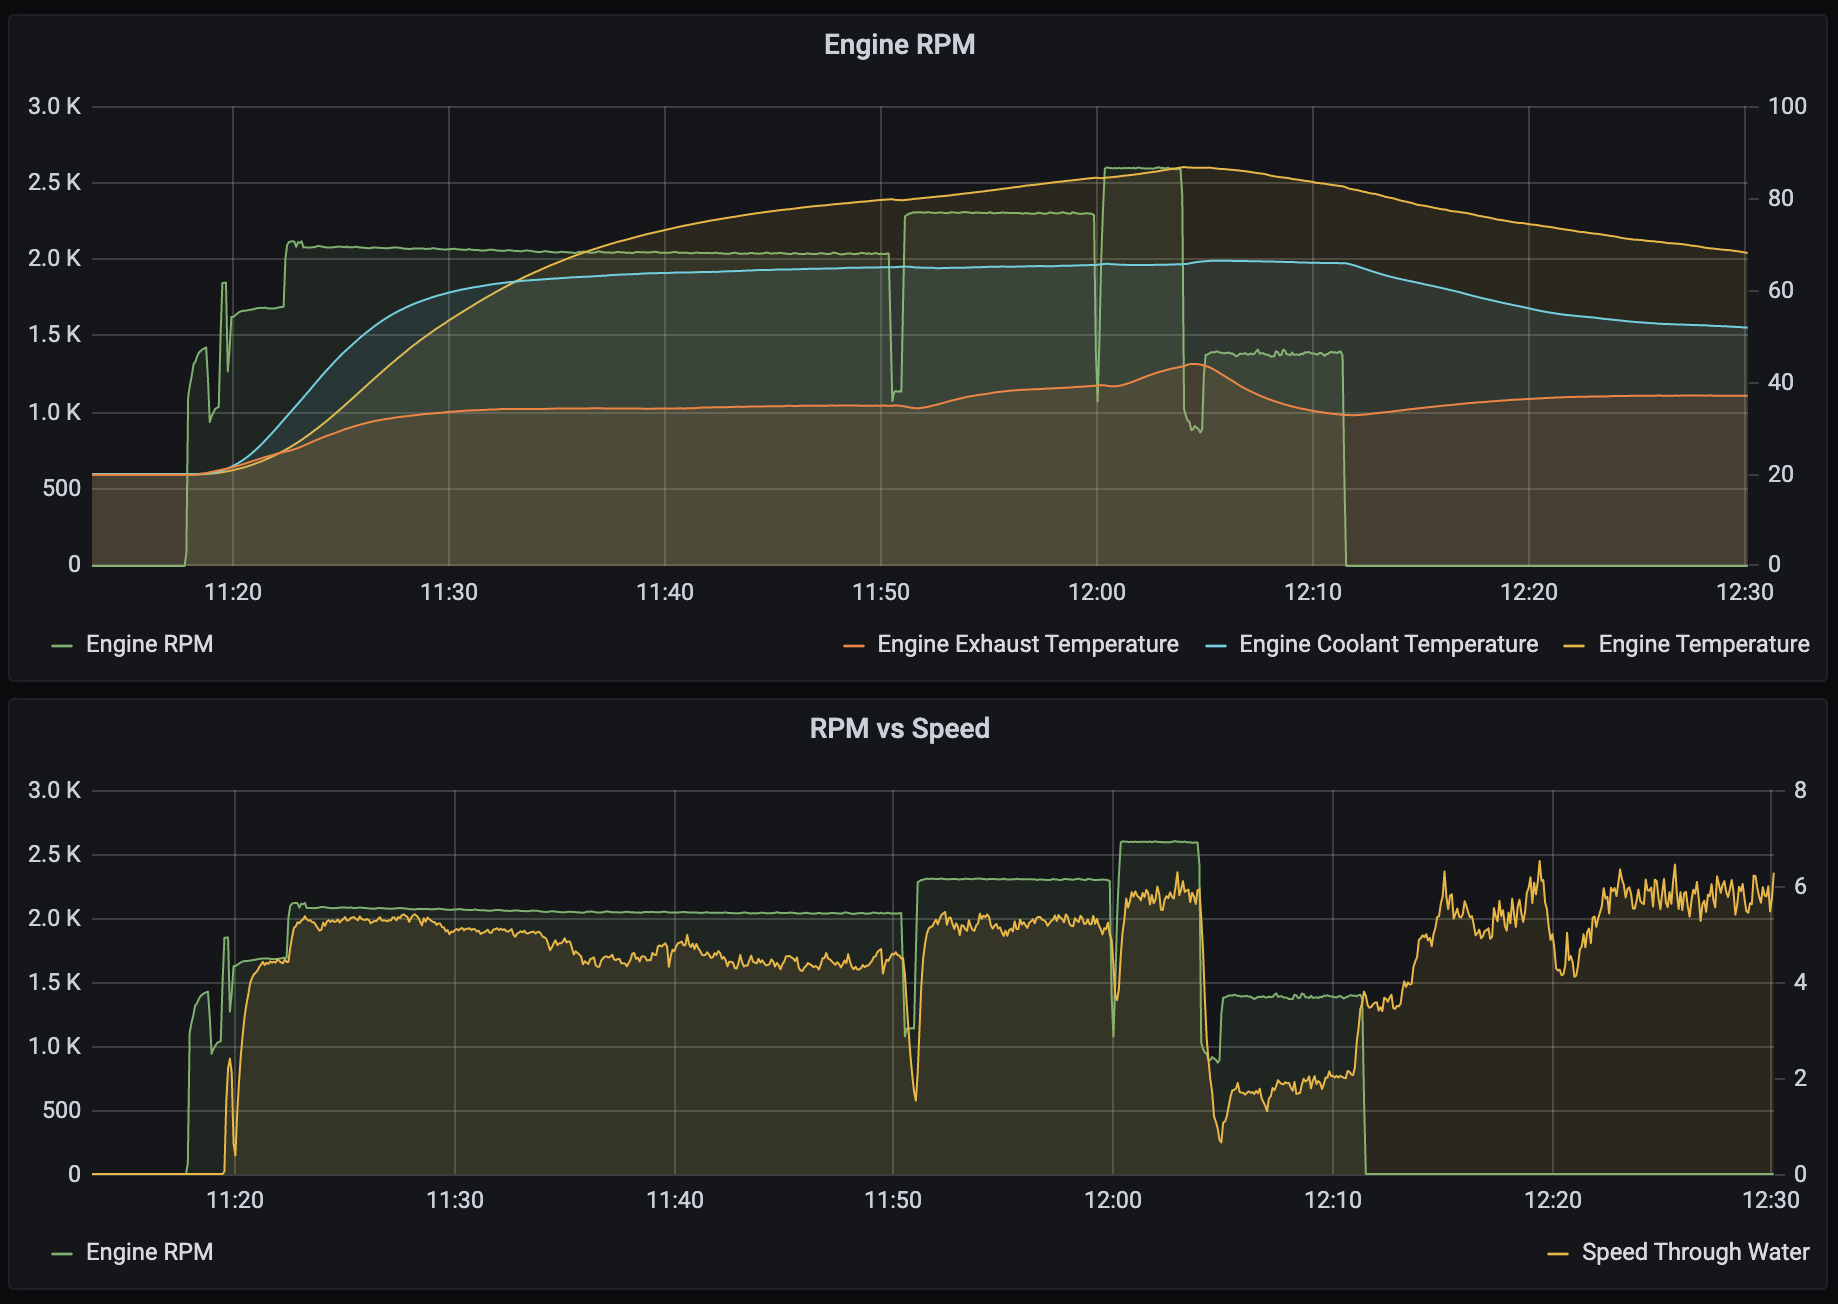 grafana_engine